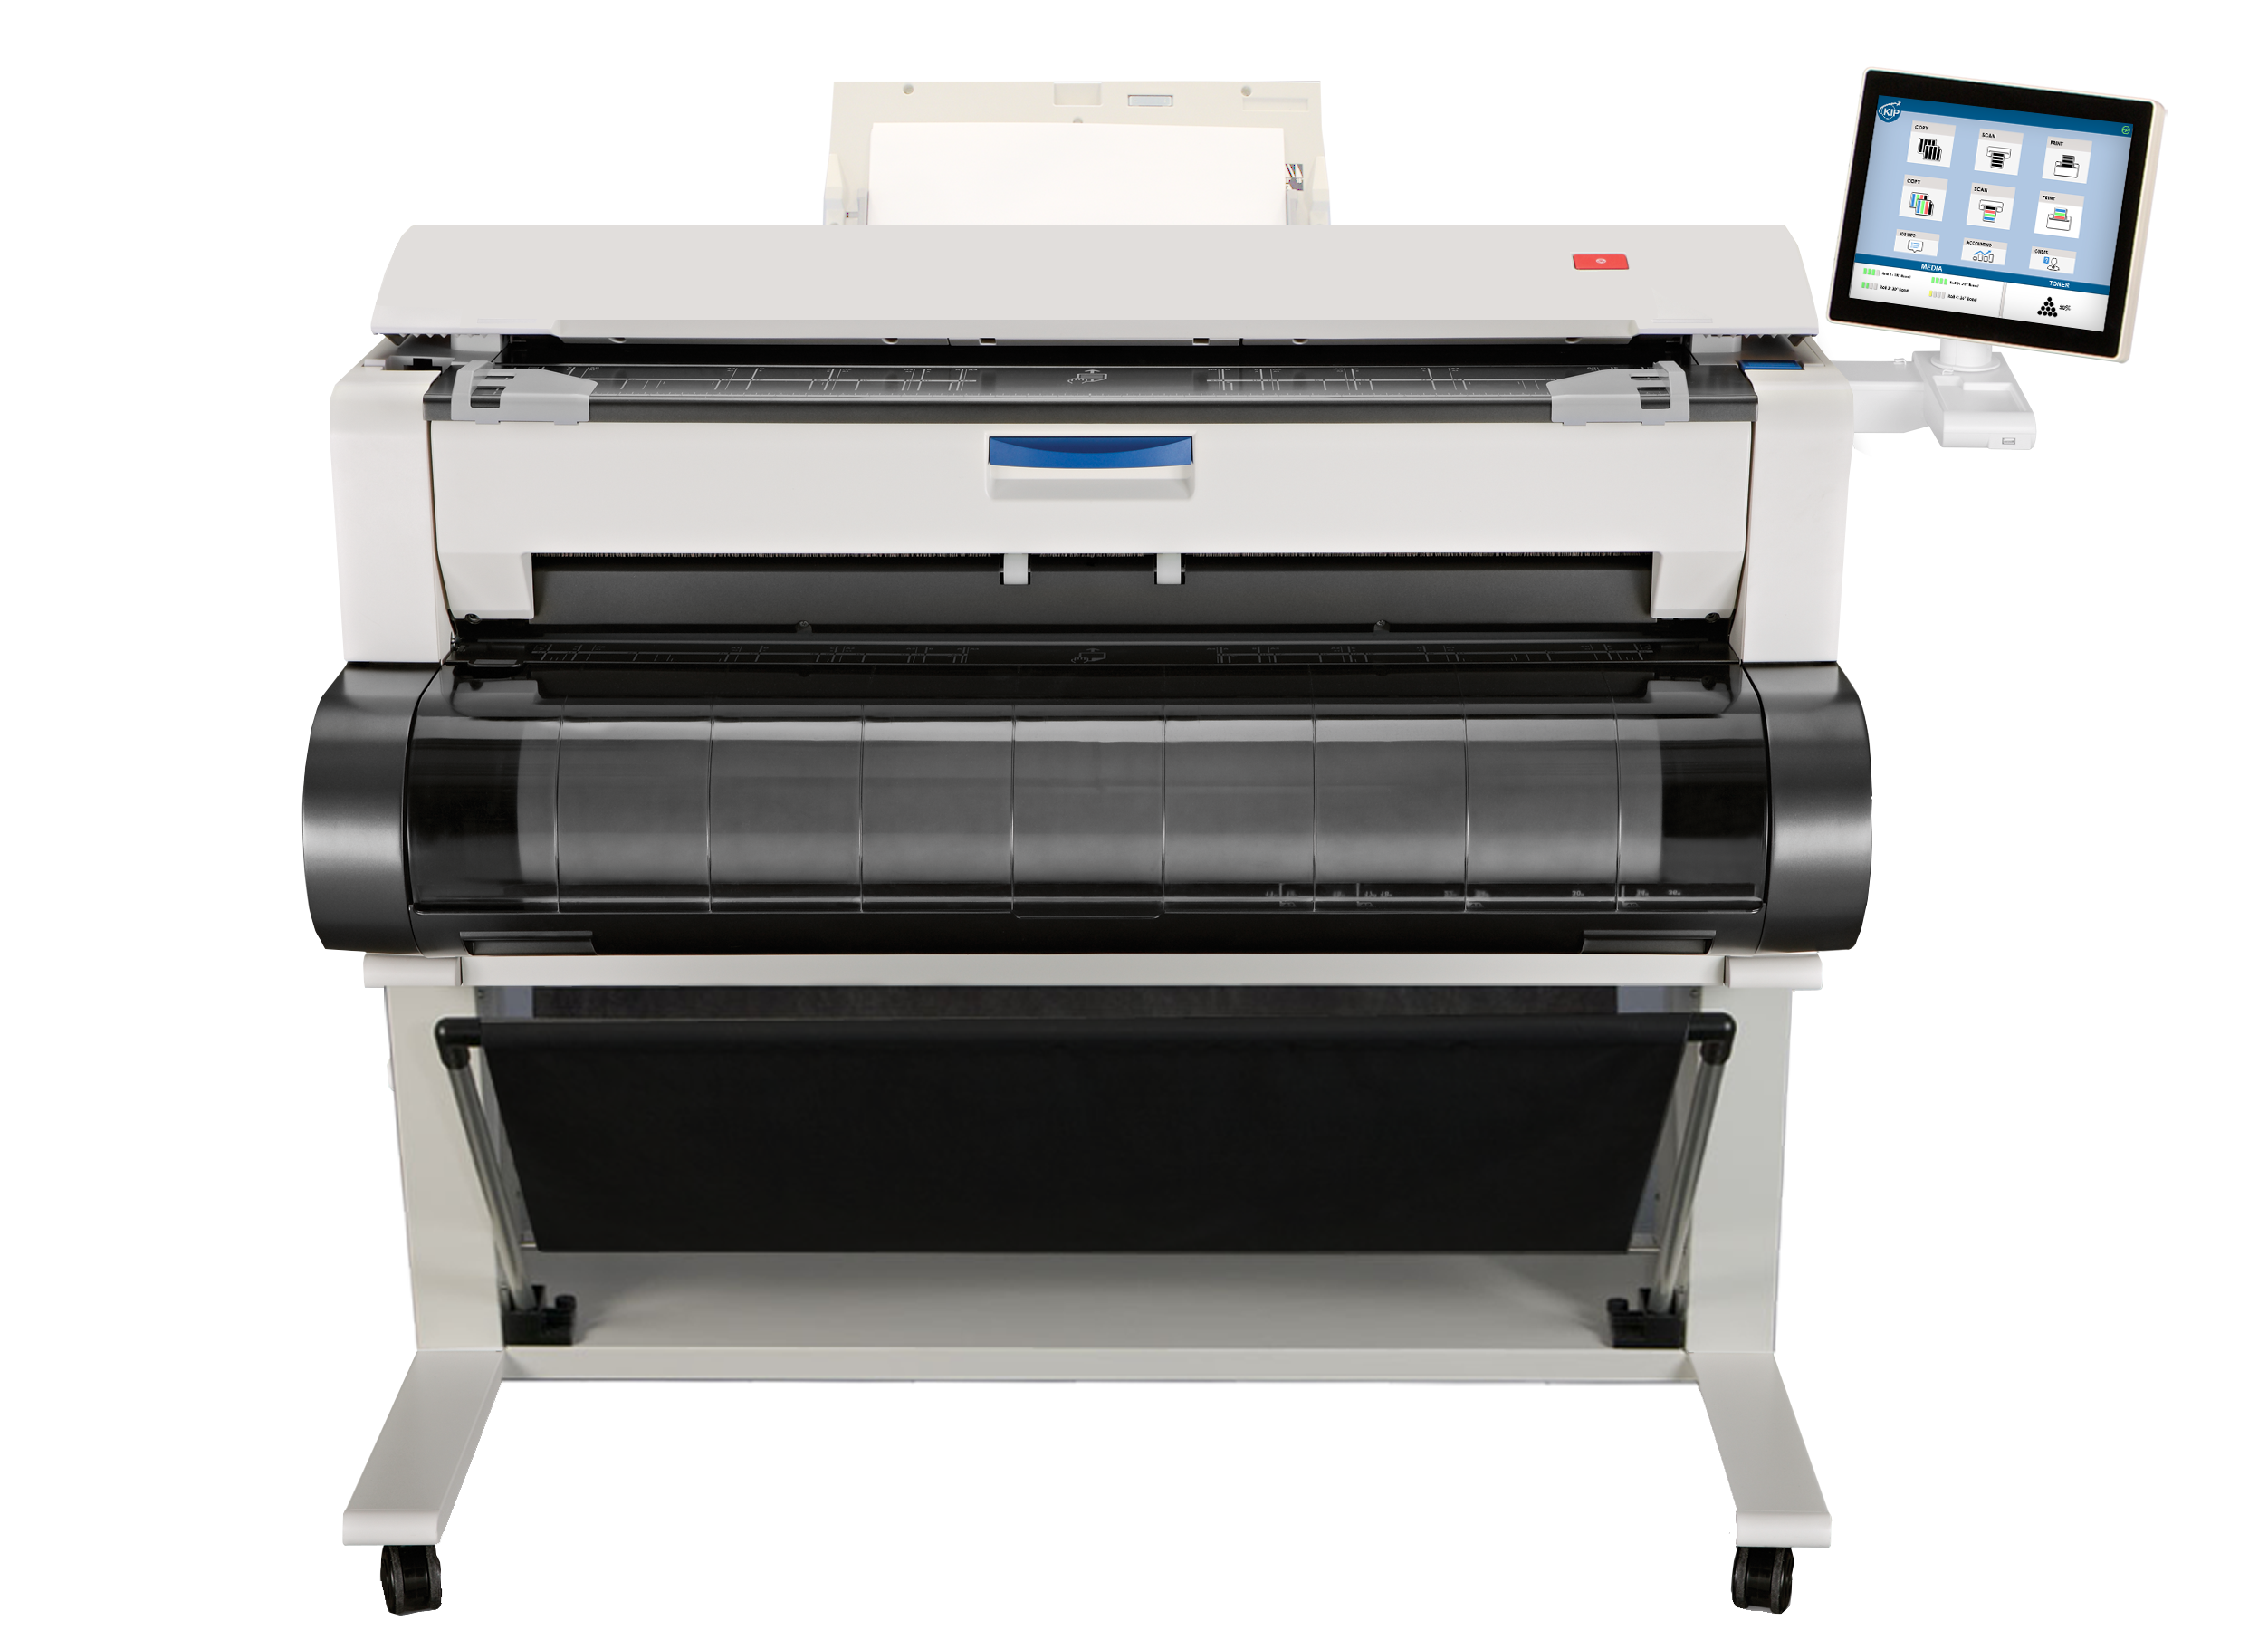 KIP 770 professionel printer